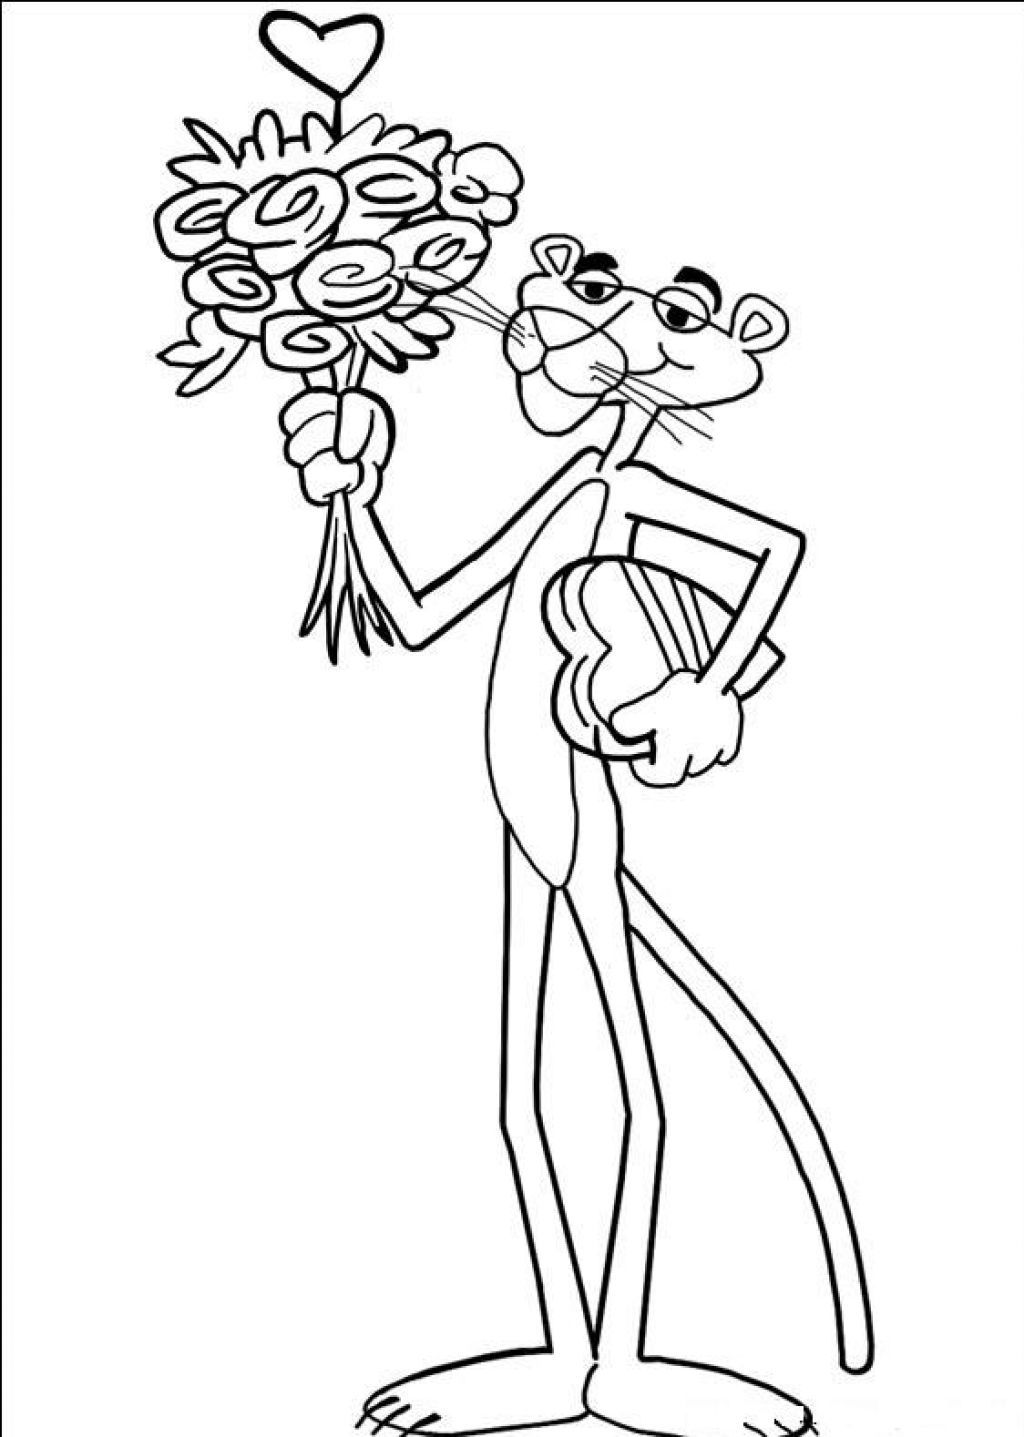 Pink-Panther-With-Flowers-Coloring-Pages.jpg (1024×1437)   STENCILS ...